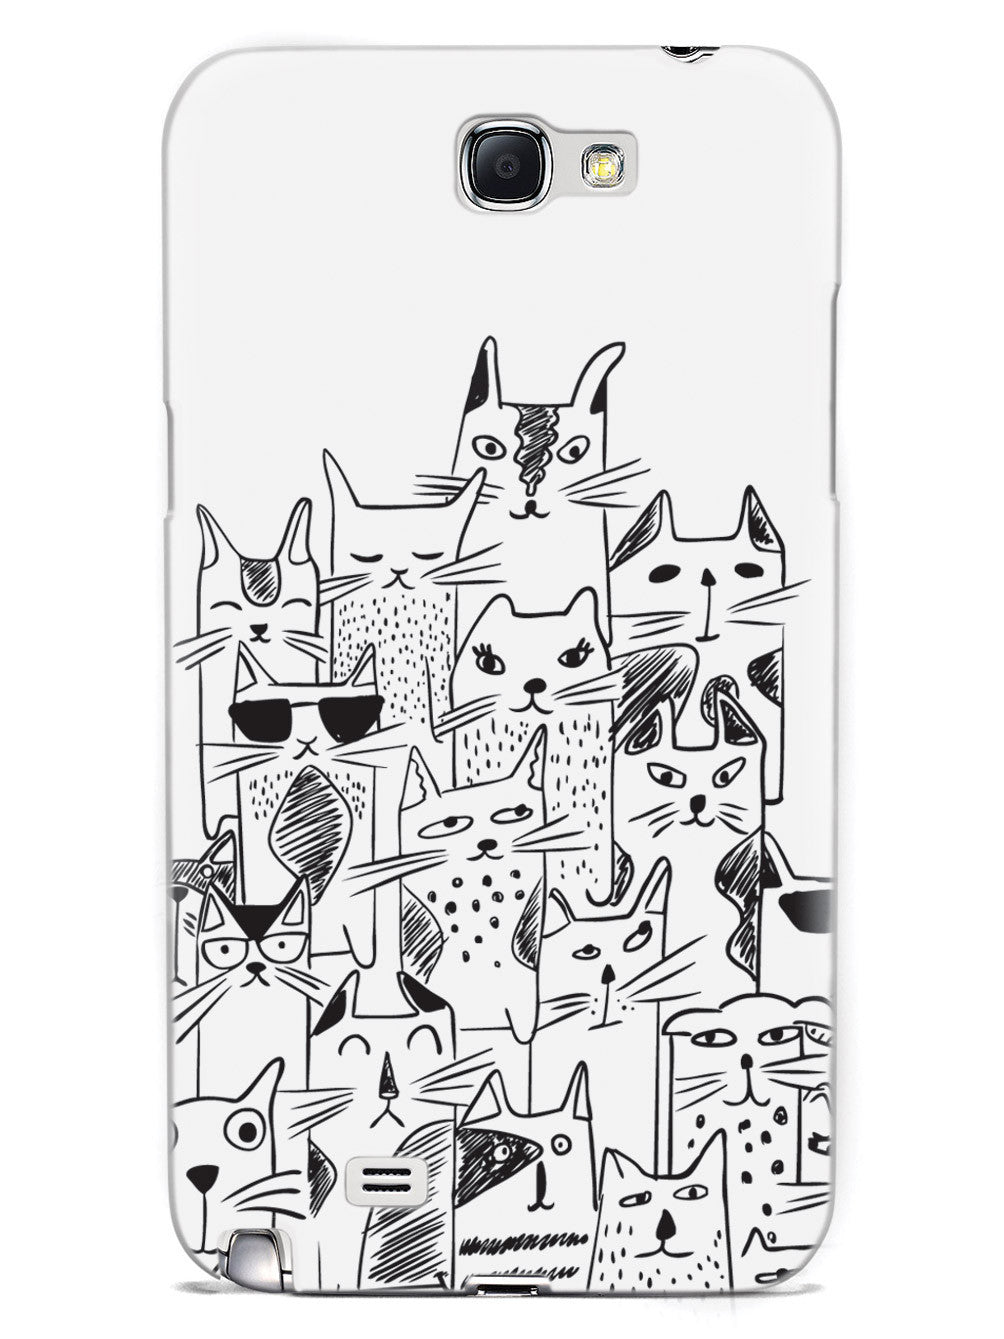 Stack O' Cats Case